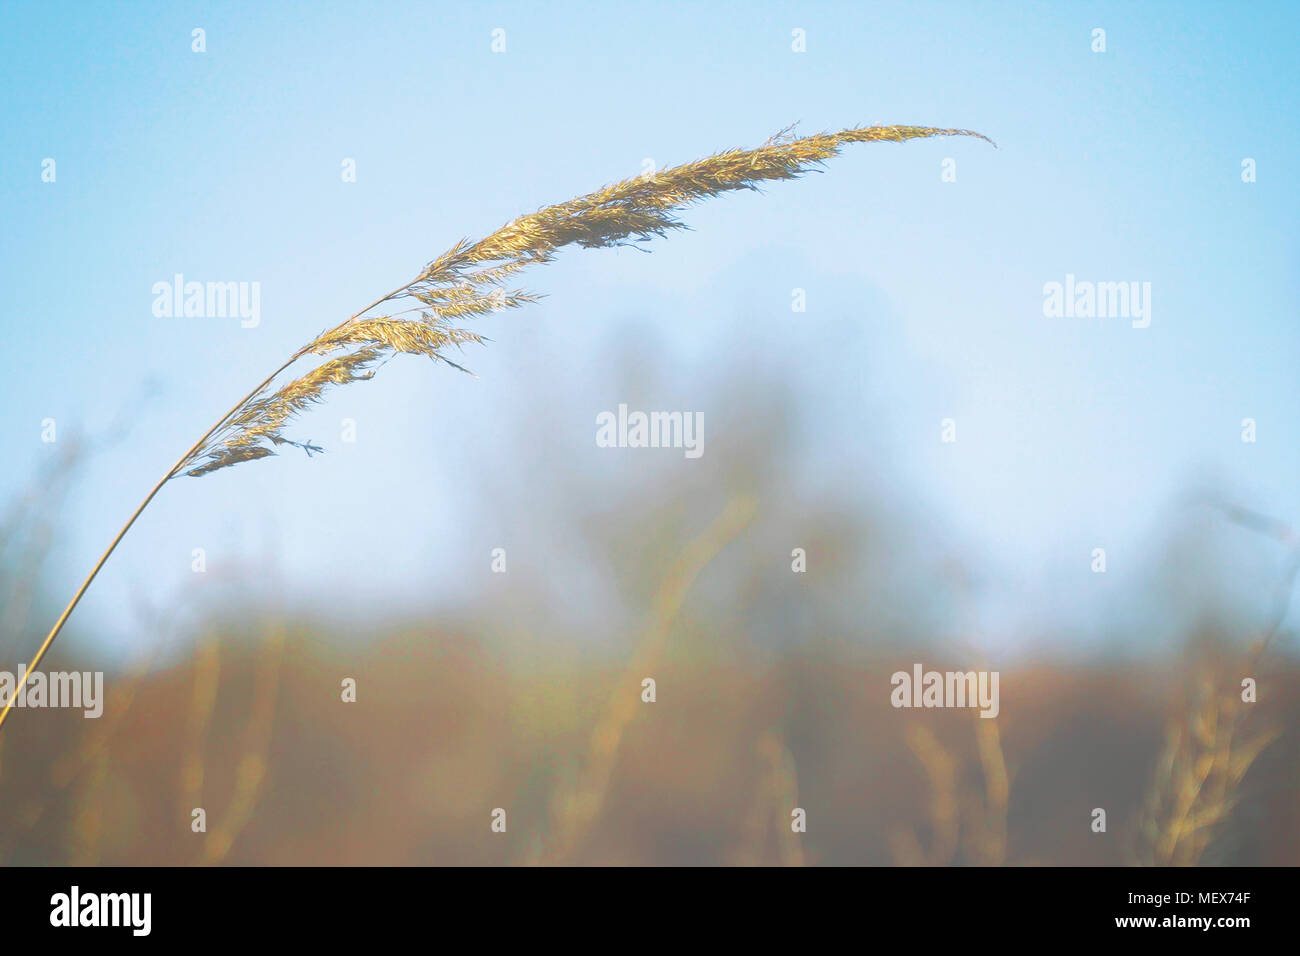 Dry blade of grass swaying in the wind - Stock Image